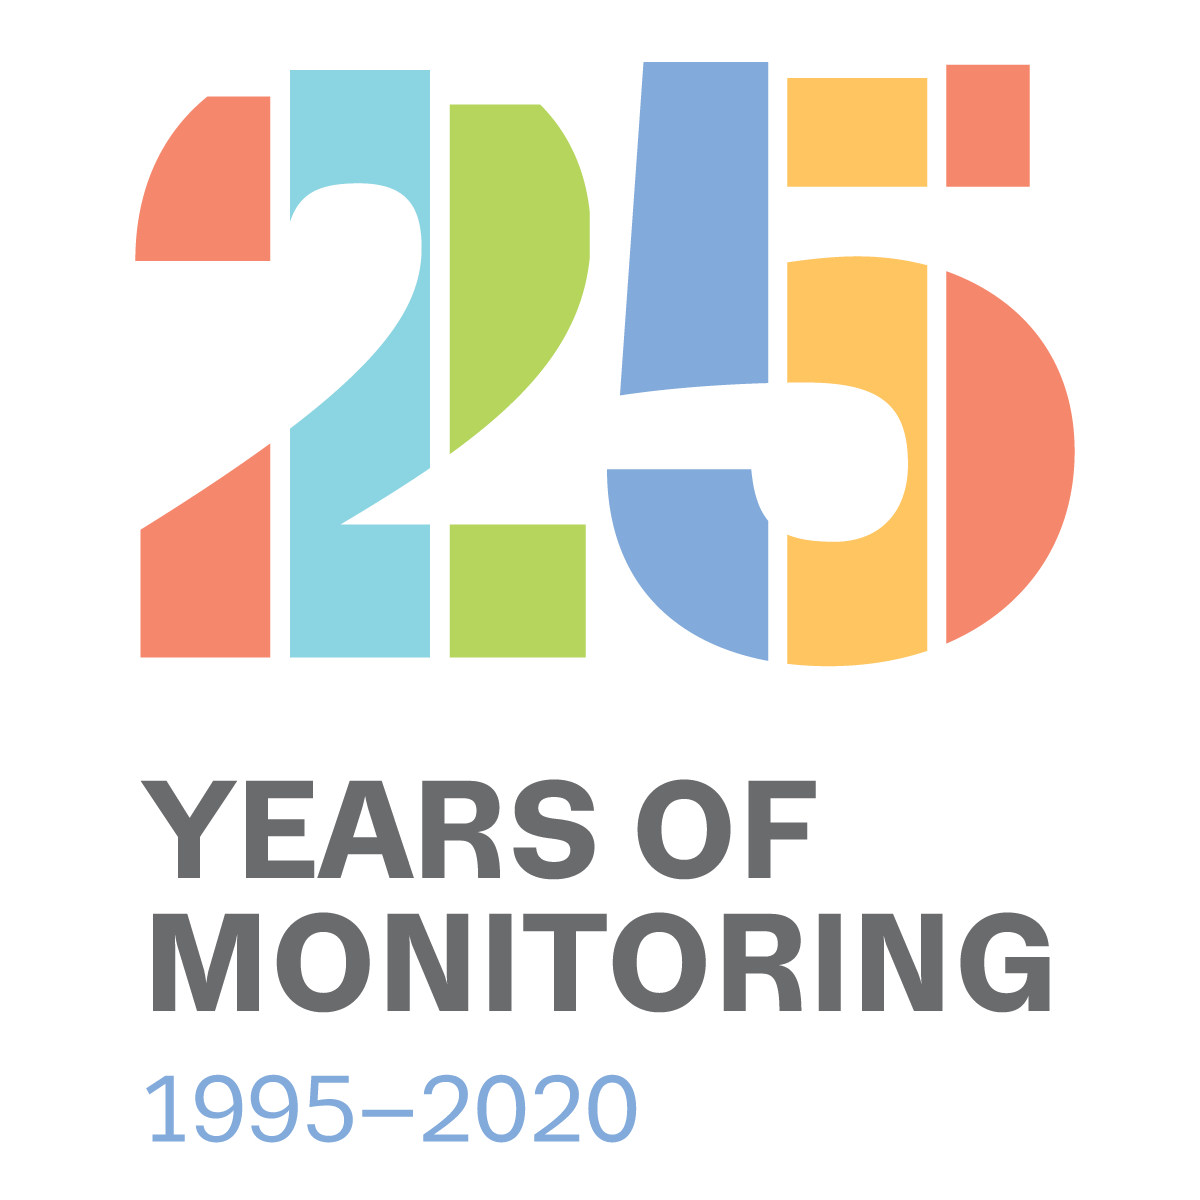 25 year of drug monitoring (1995-2020)